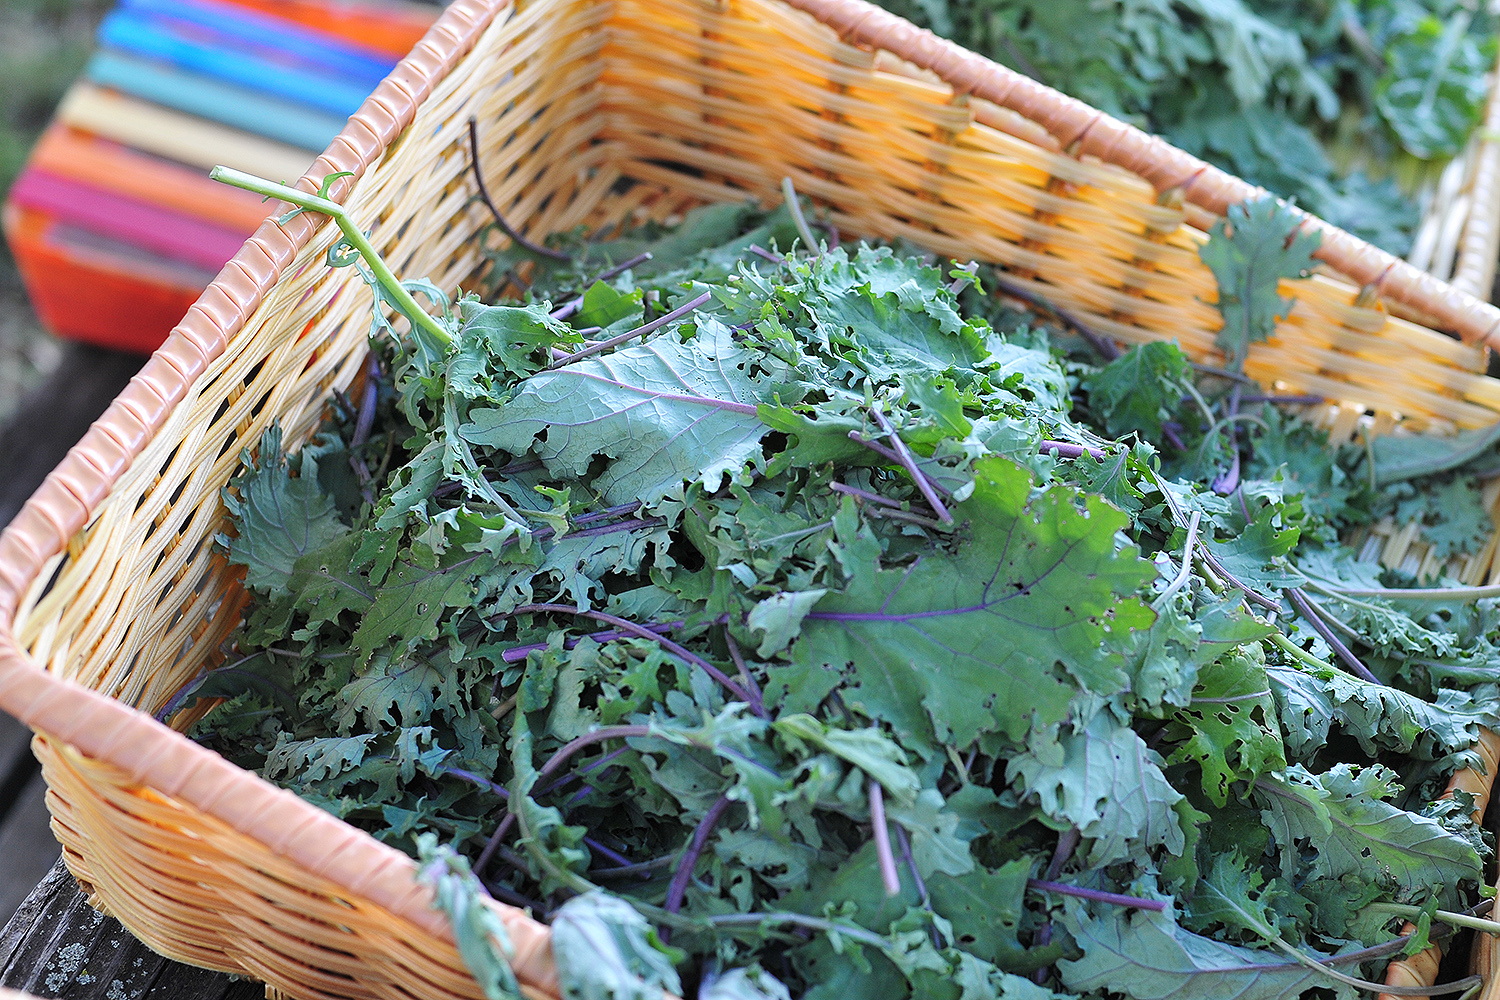 Vegetables include chard, kale, cabbage, collards, turnips, radishes, scapes, spinach, herbs, arugula flowers, dandelion jelly and more.